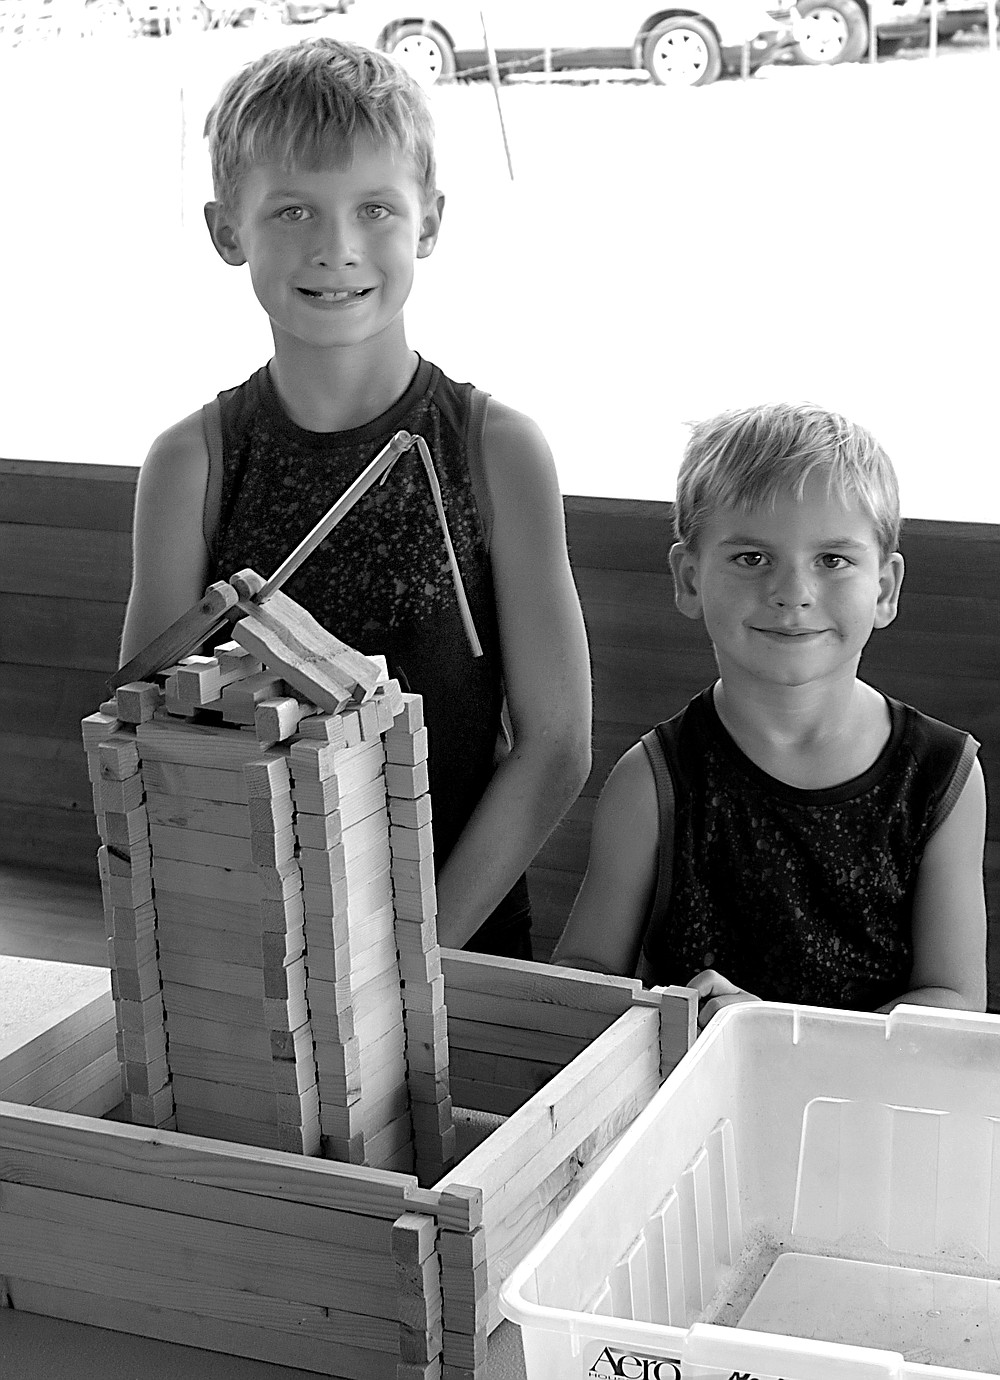 Westside Eagle Observer/ RANDY MOLL Peyton DeCamp, 8, and his brother Anthony, 6, pose next to a building Peyton constructed out of wooden building blocks at the antique home items building on the showgrounds of Tired Iron of the Ozarks on Saturday, Sept. 11, 2021.